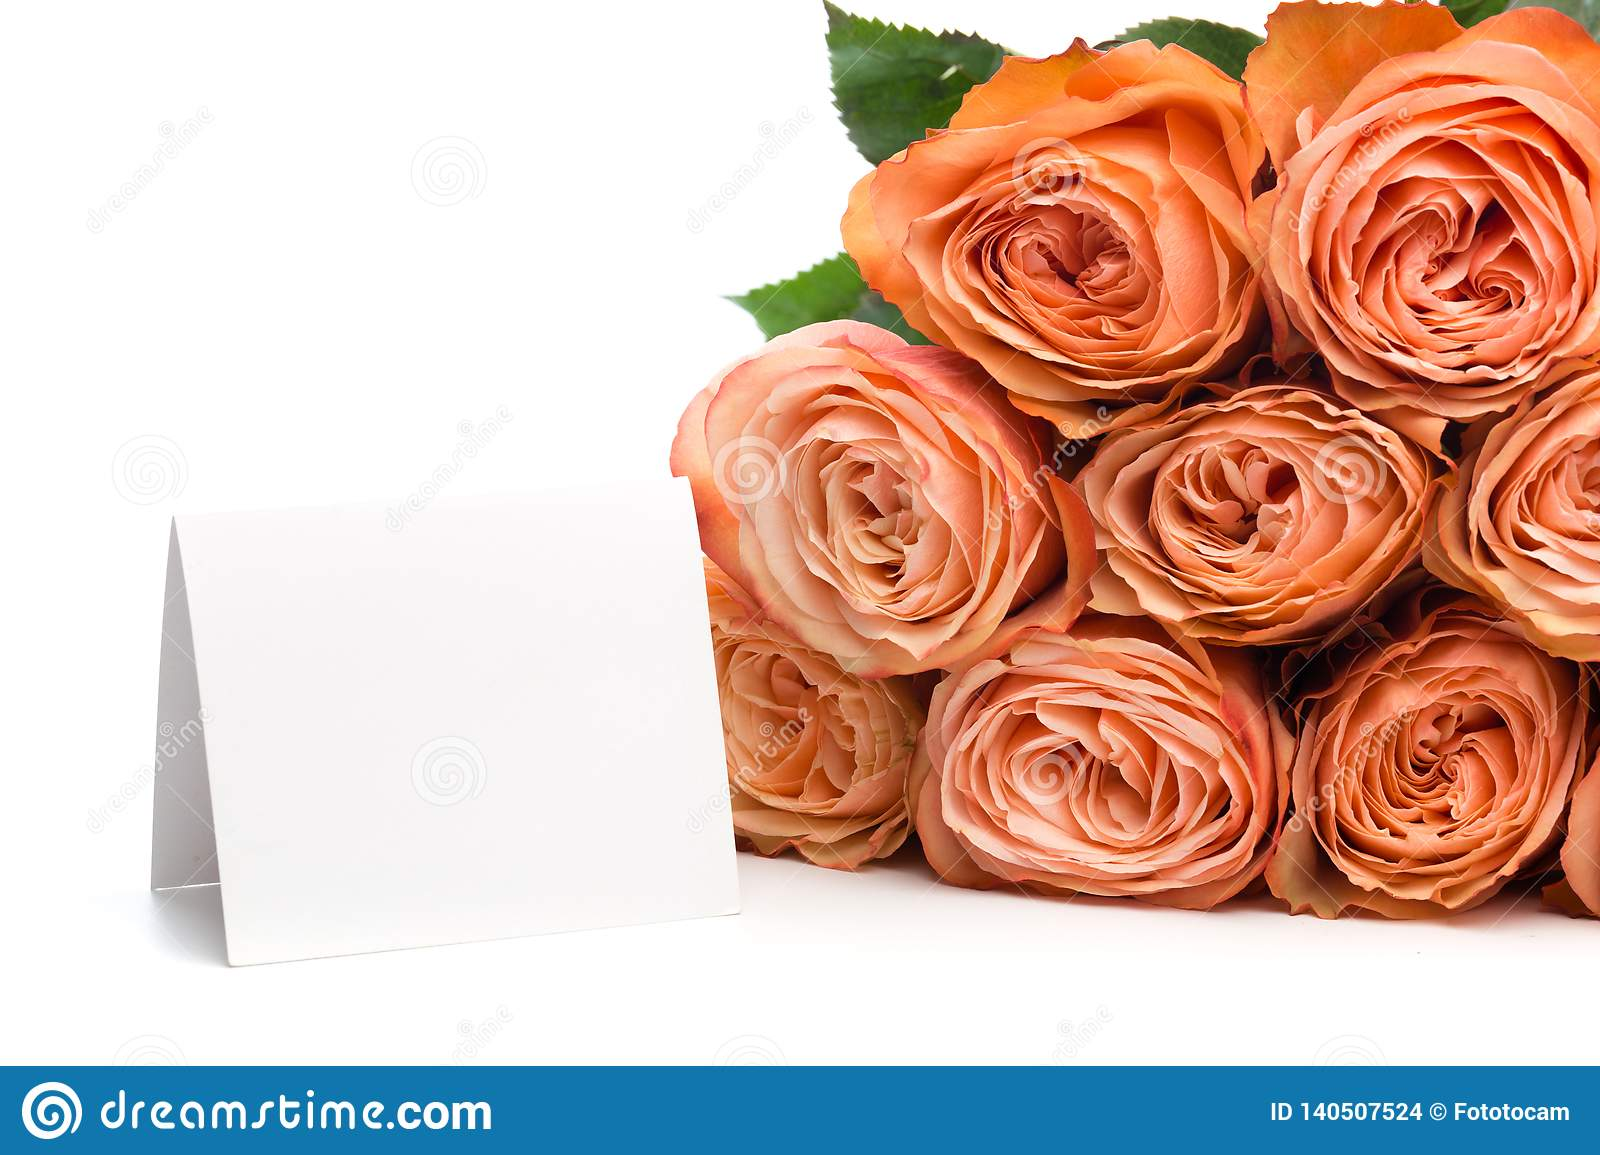 Rose roses with text place isolated on white background - Image